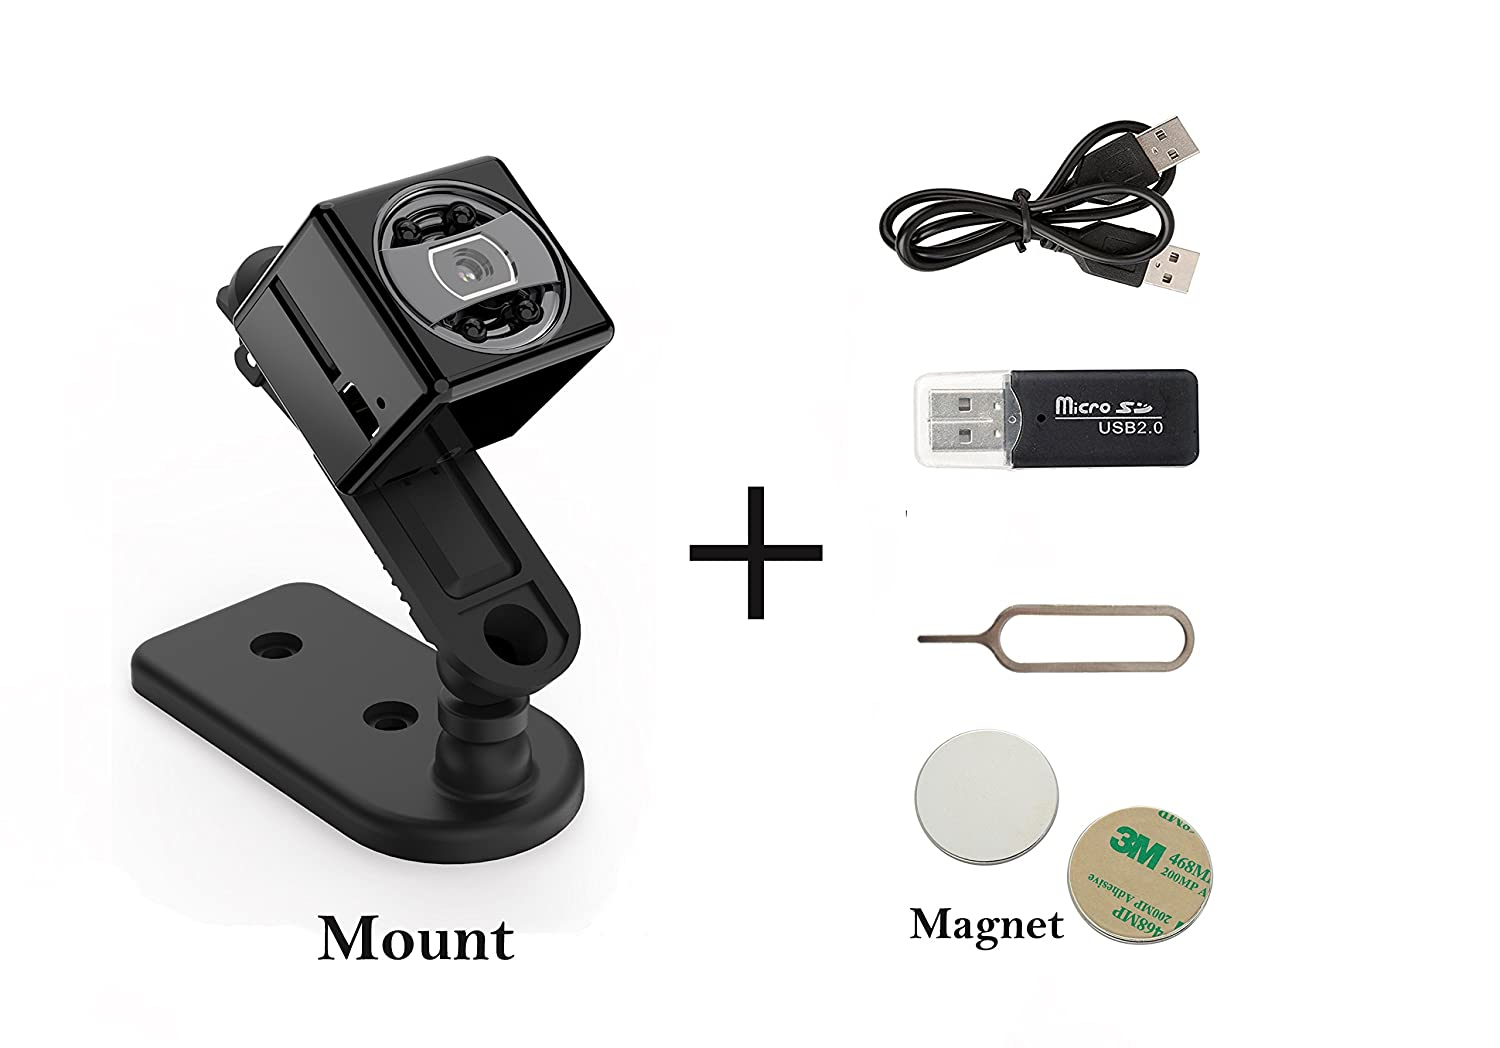 Amazon.com : Spy Hidden Camera with Night Vision [Newest Model] Smart Mini Spy with Motion Detection, Loop Recording, Cámara oculta - by Vicksa : Camera & ...